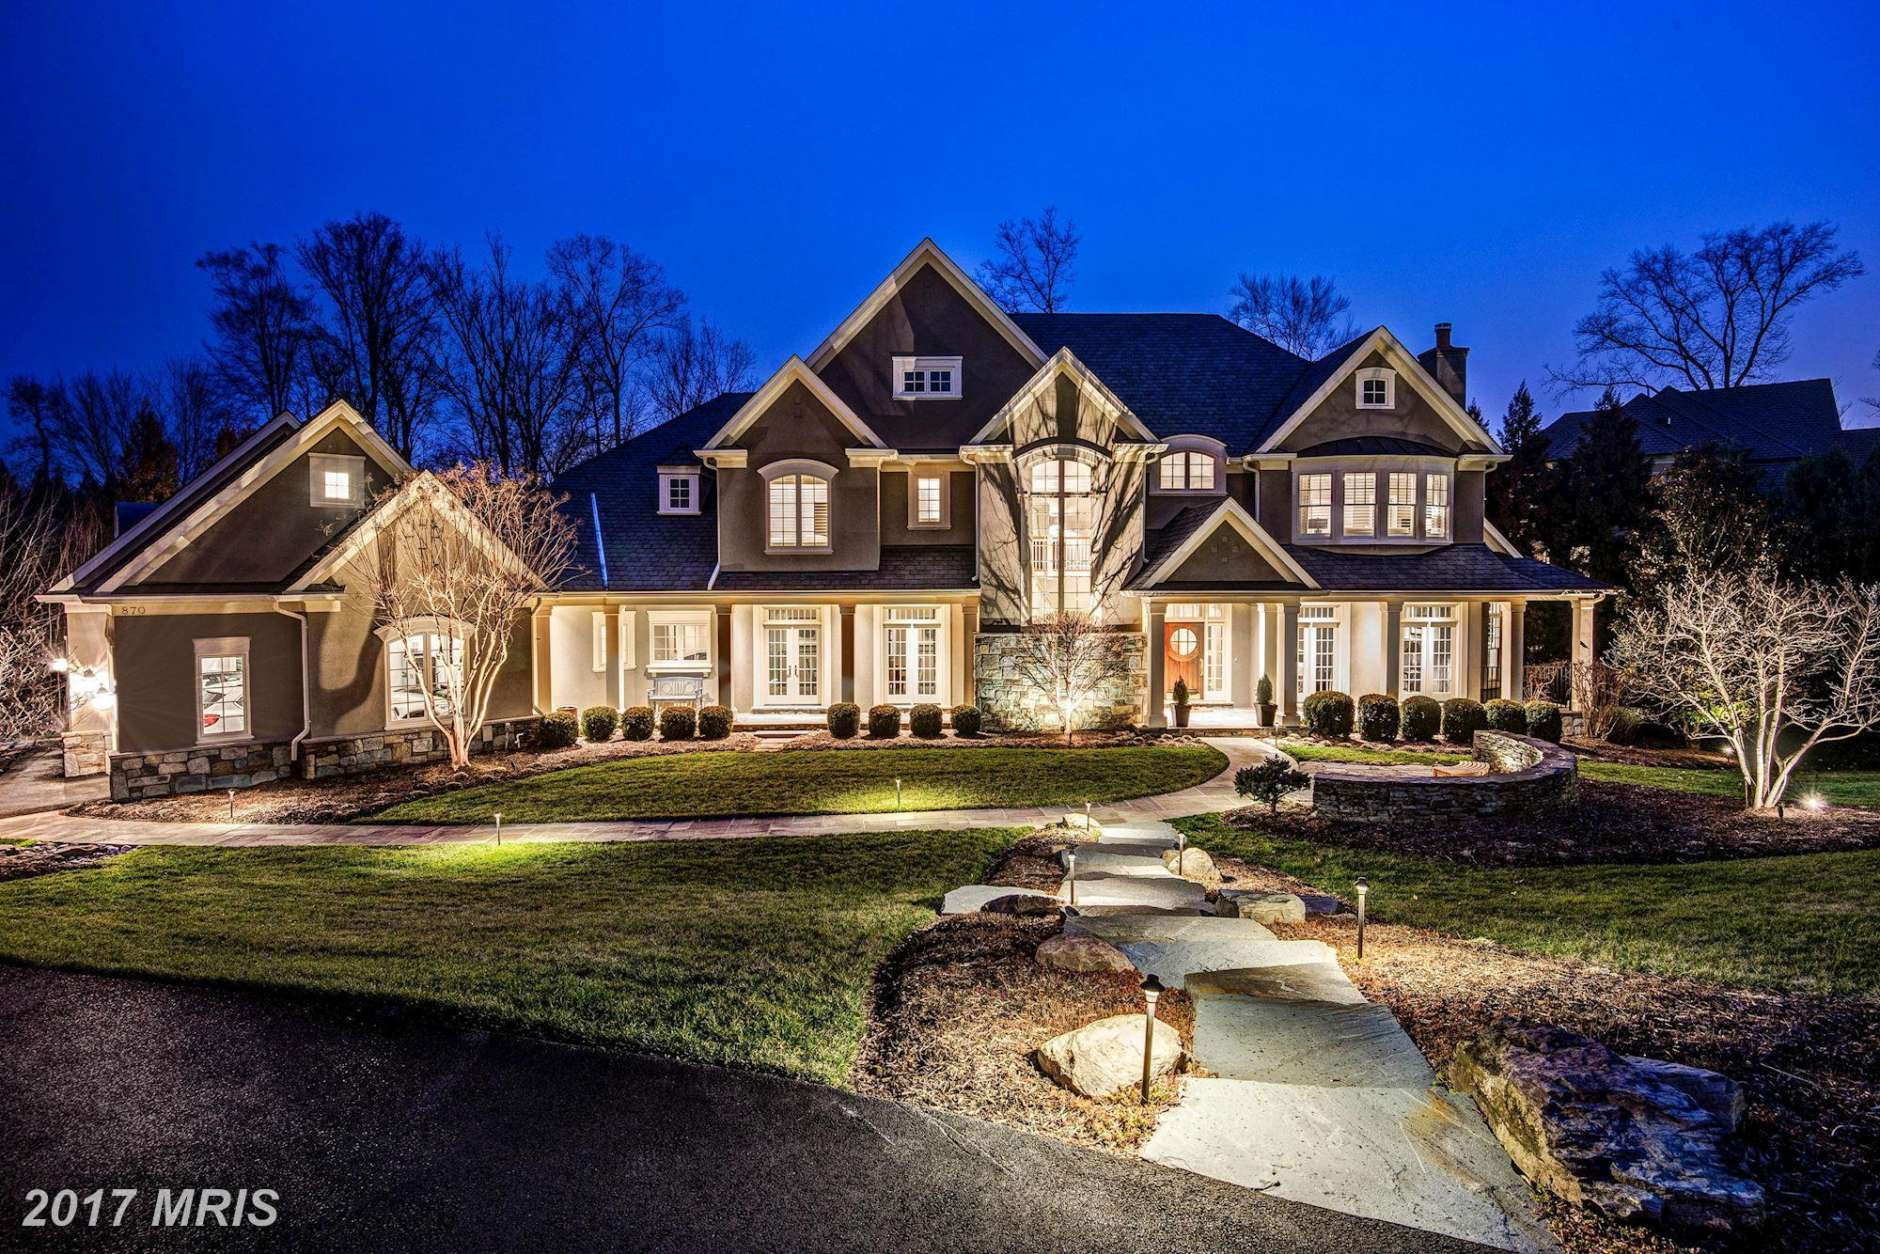 6. $3.225 million 870 Alvermar Ridge Drive McLean, Virginia Sitting on a nearly 1-acre flat lot, this 2002 home has over 9,000 square feet of interior that includes eight bedrooms, seven full bathrooms and two half-bathrooms. Features include a chef's kitchen, flex spaces, an au pair suite and a luxury master suite. (Photo courtesy MRIS, a Bright MLS)